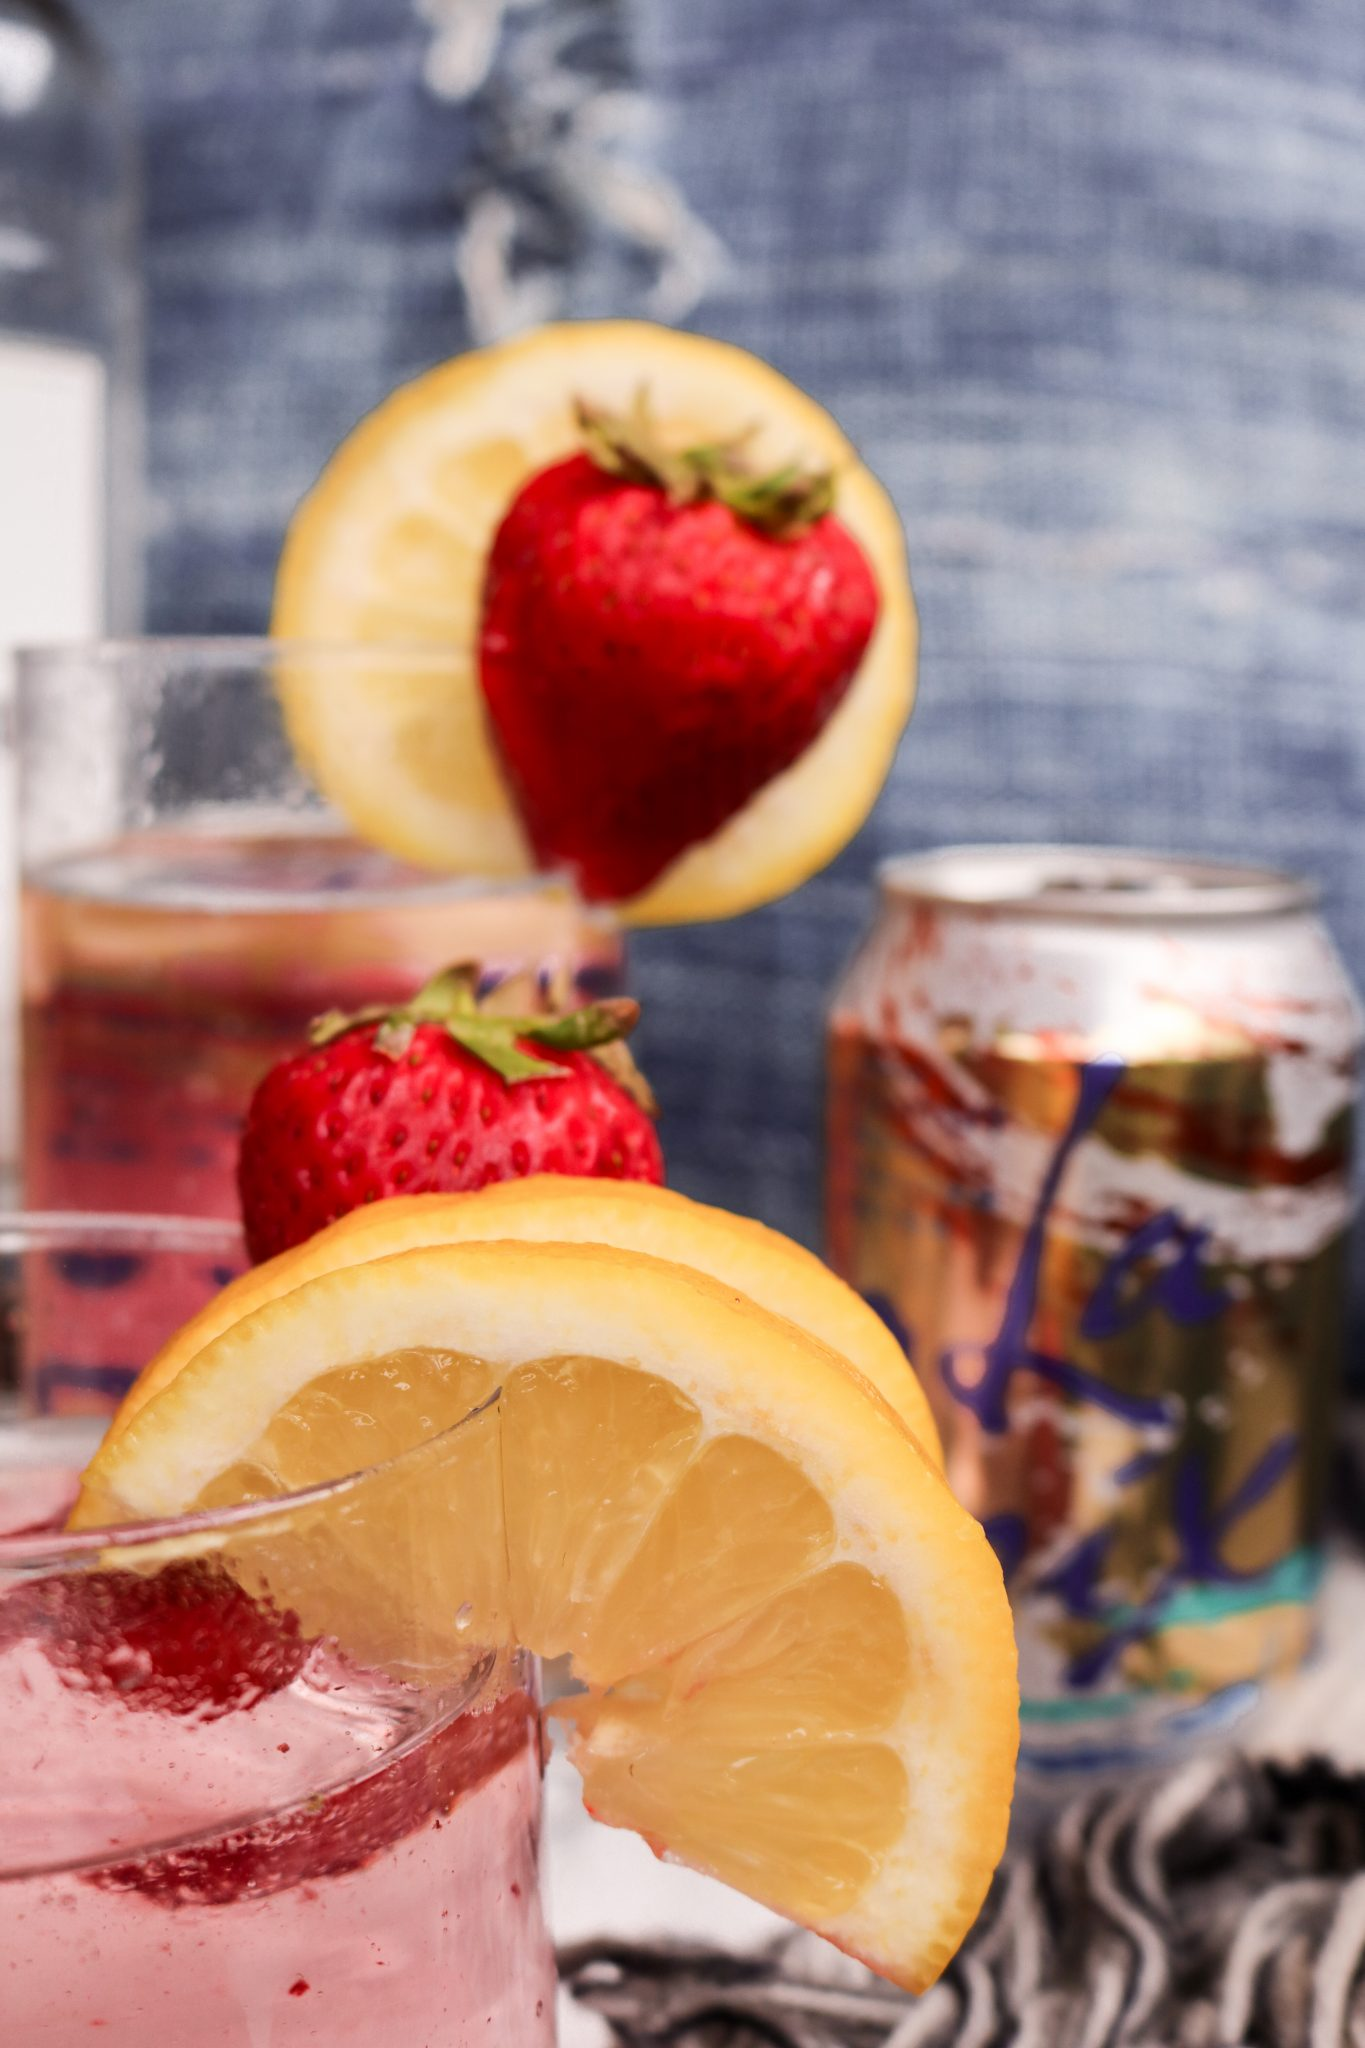 The-Hungarian-Brunette-Skinny-cocktails-lacroix-water-and-vodka-4-of-4.jpg